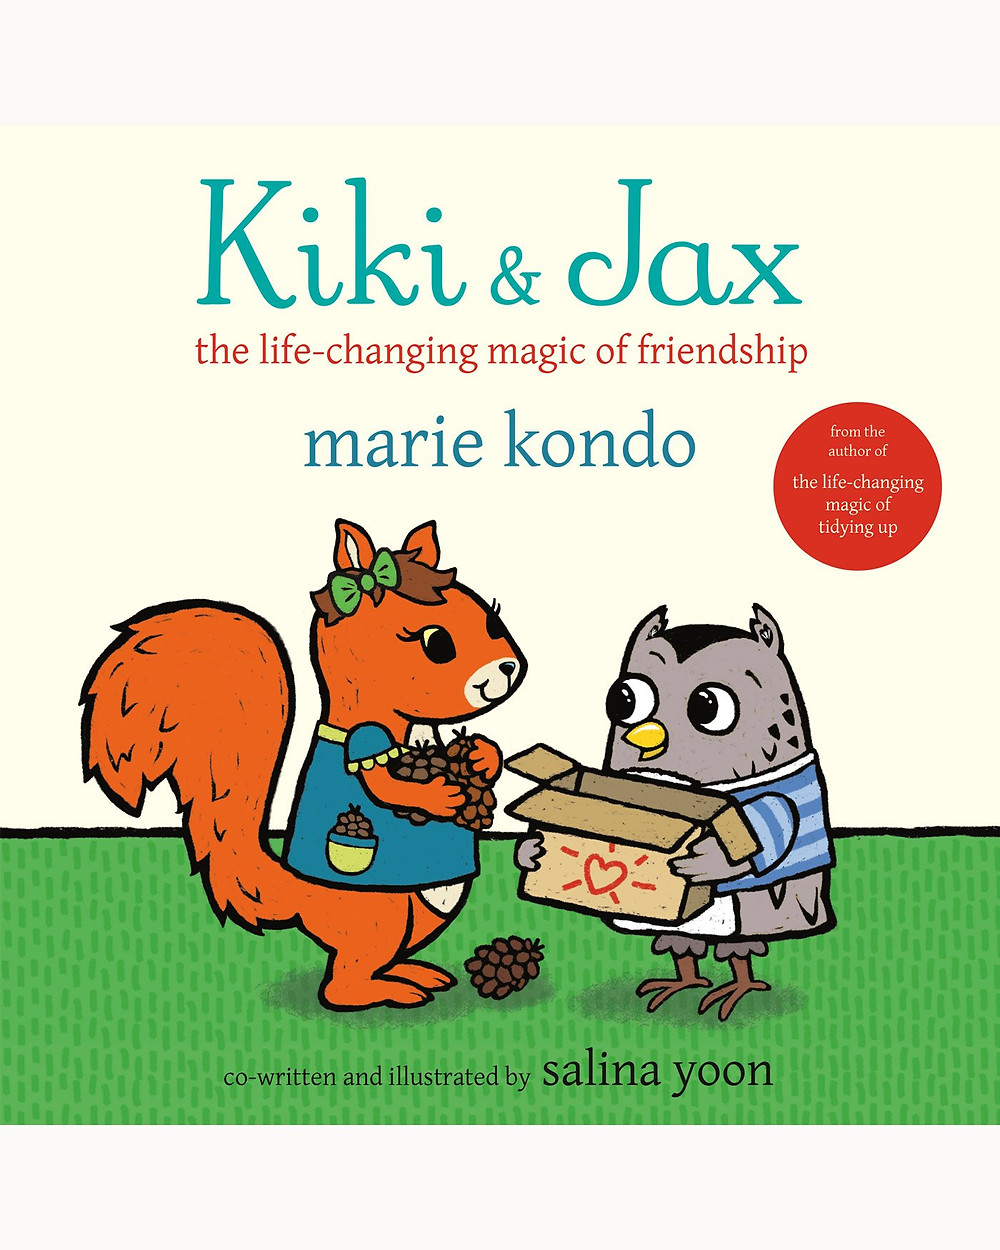 Marie Kondo's book Kiki and Jax